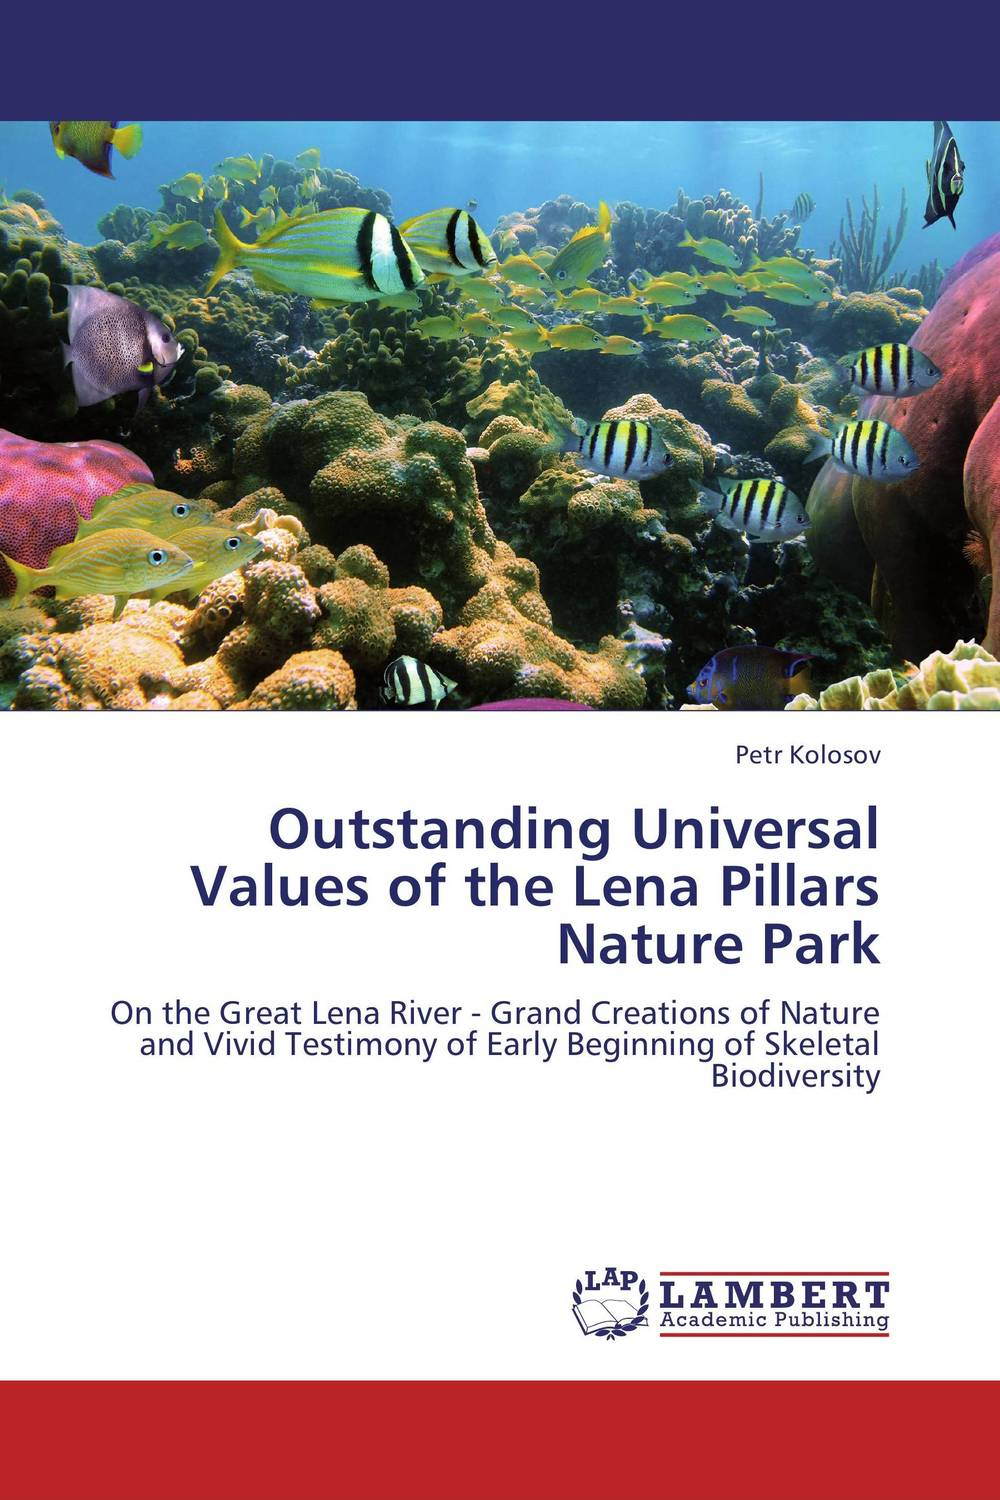 Outstanding Universal Values of the Lena Pillars Nature Park kitunv22010unv86920 value kit universal steno book unv86920 and universal mechanical pencil unv22010